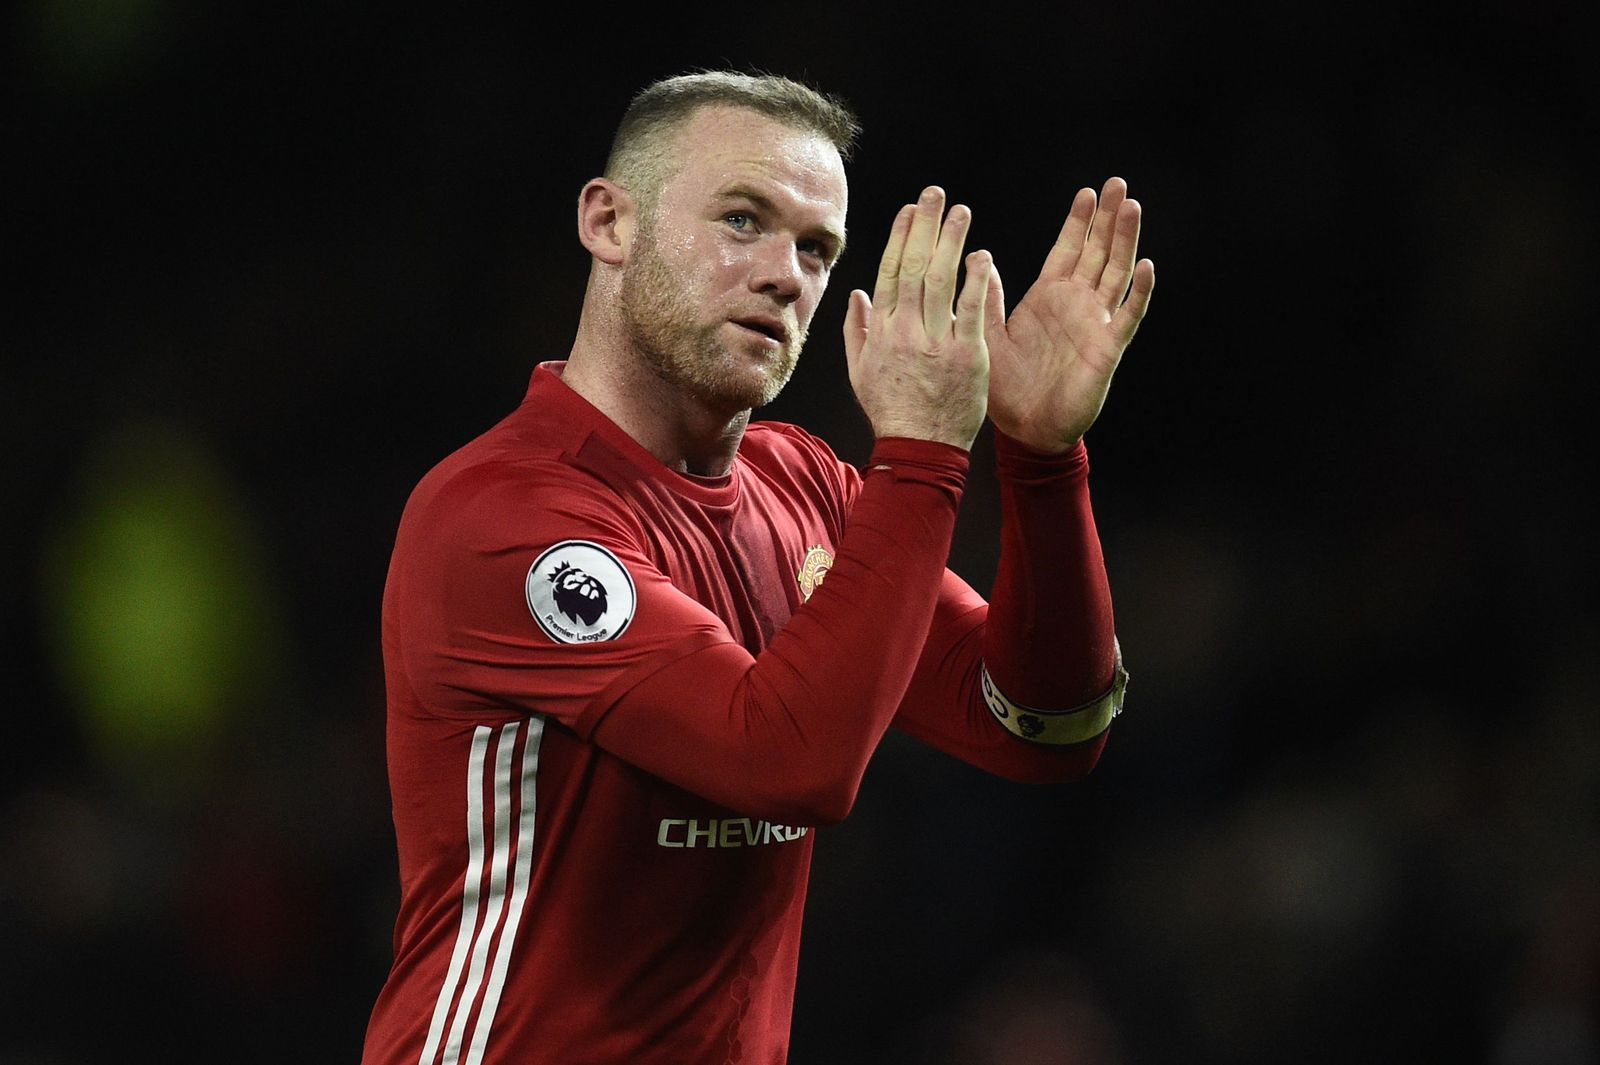 FILES-FBL-ENG-PR-CHN-MAN UTD-ROONEY